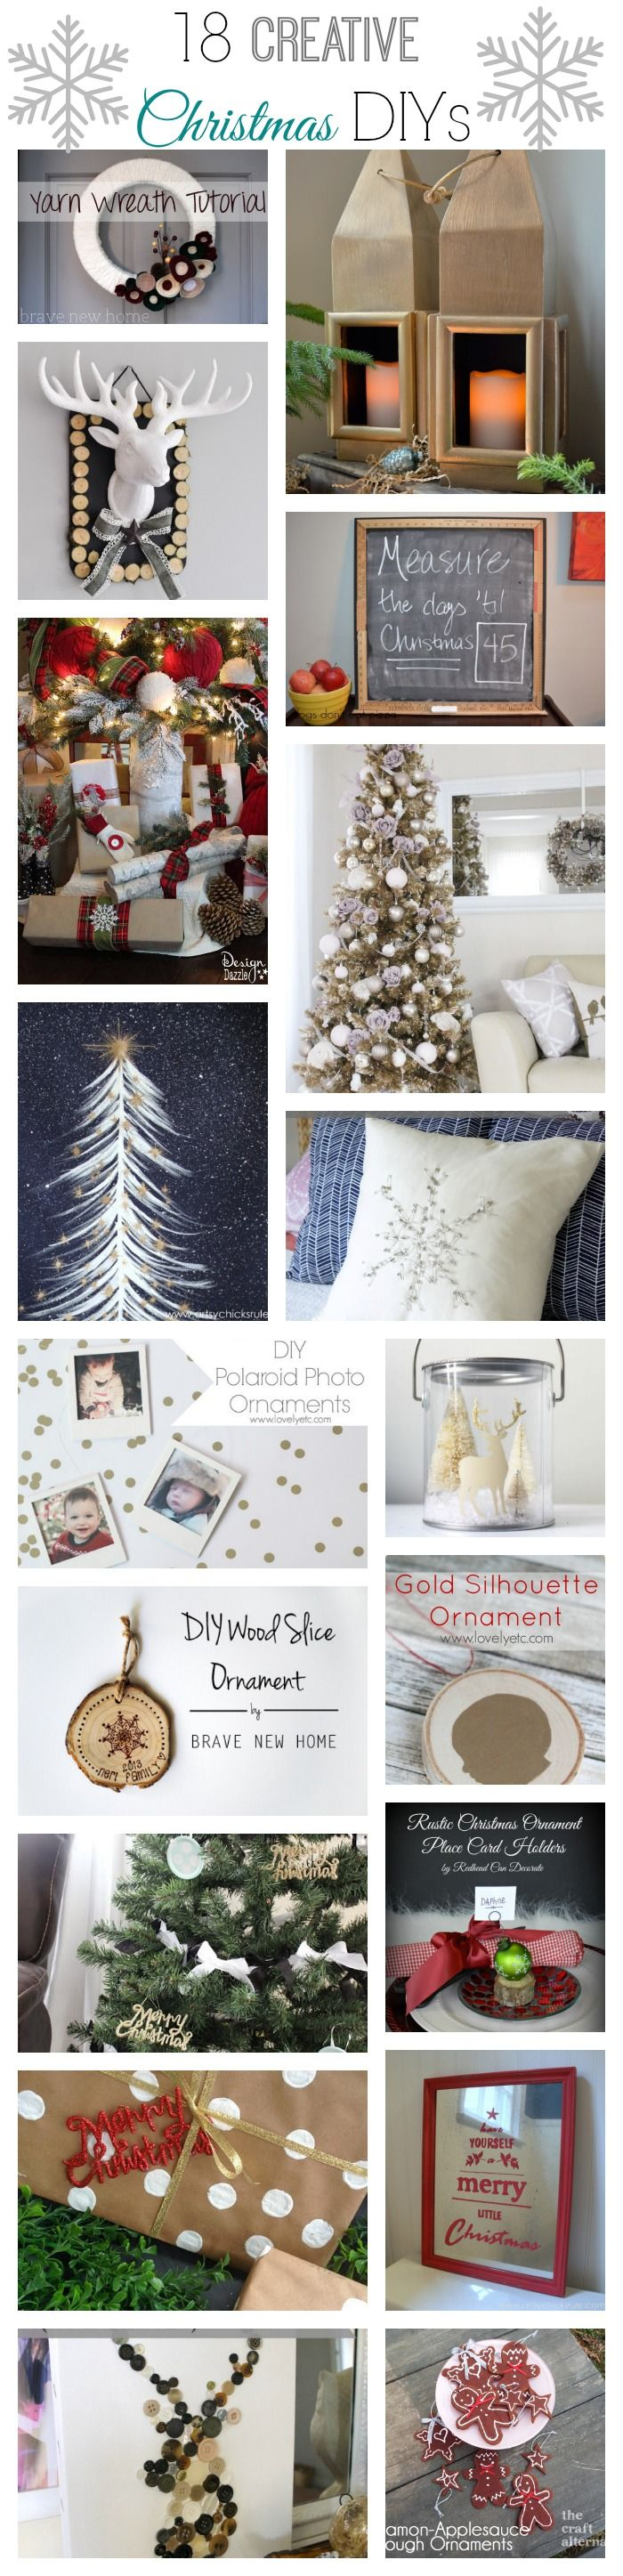 18 creative and modern takes on traditional Christmas decor!